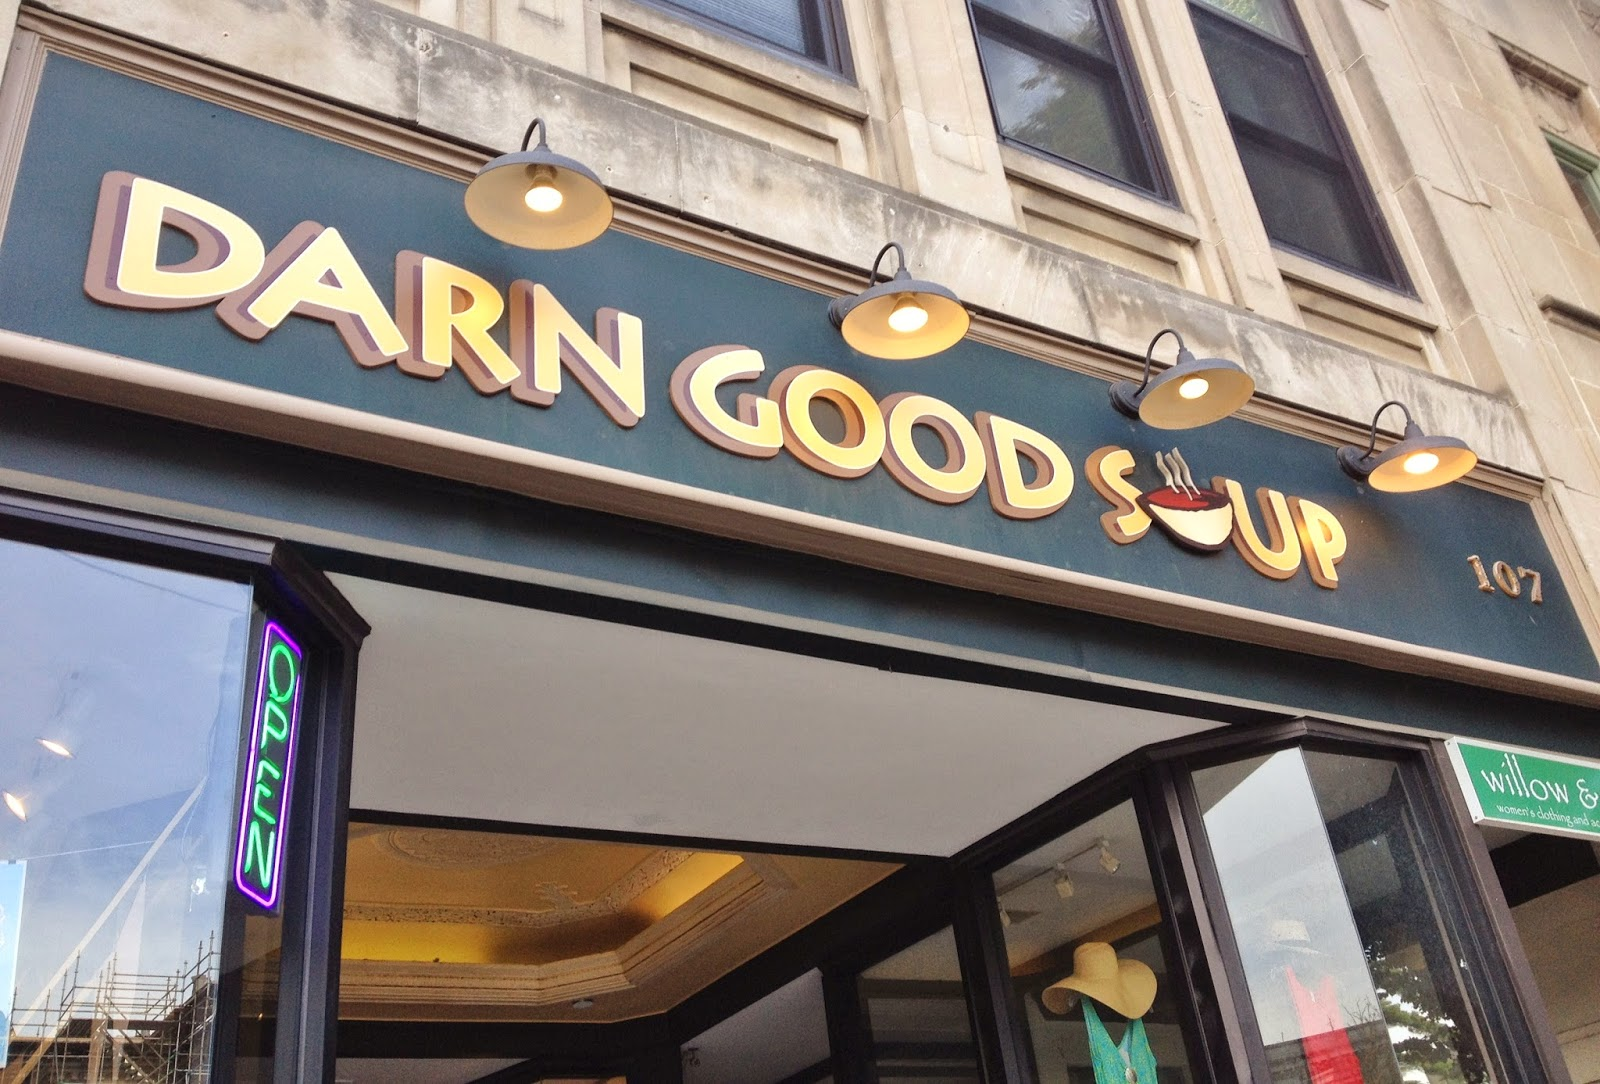 The Gluten Dairy Free Review Blog Side Trip Darn Good Soup